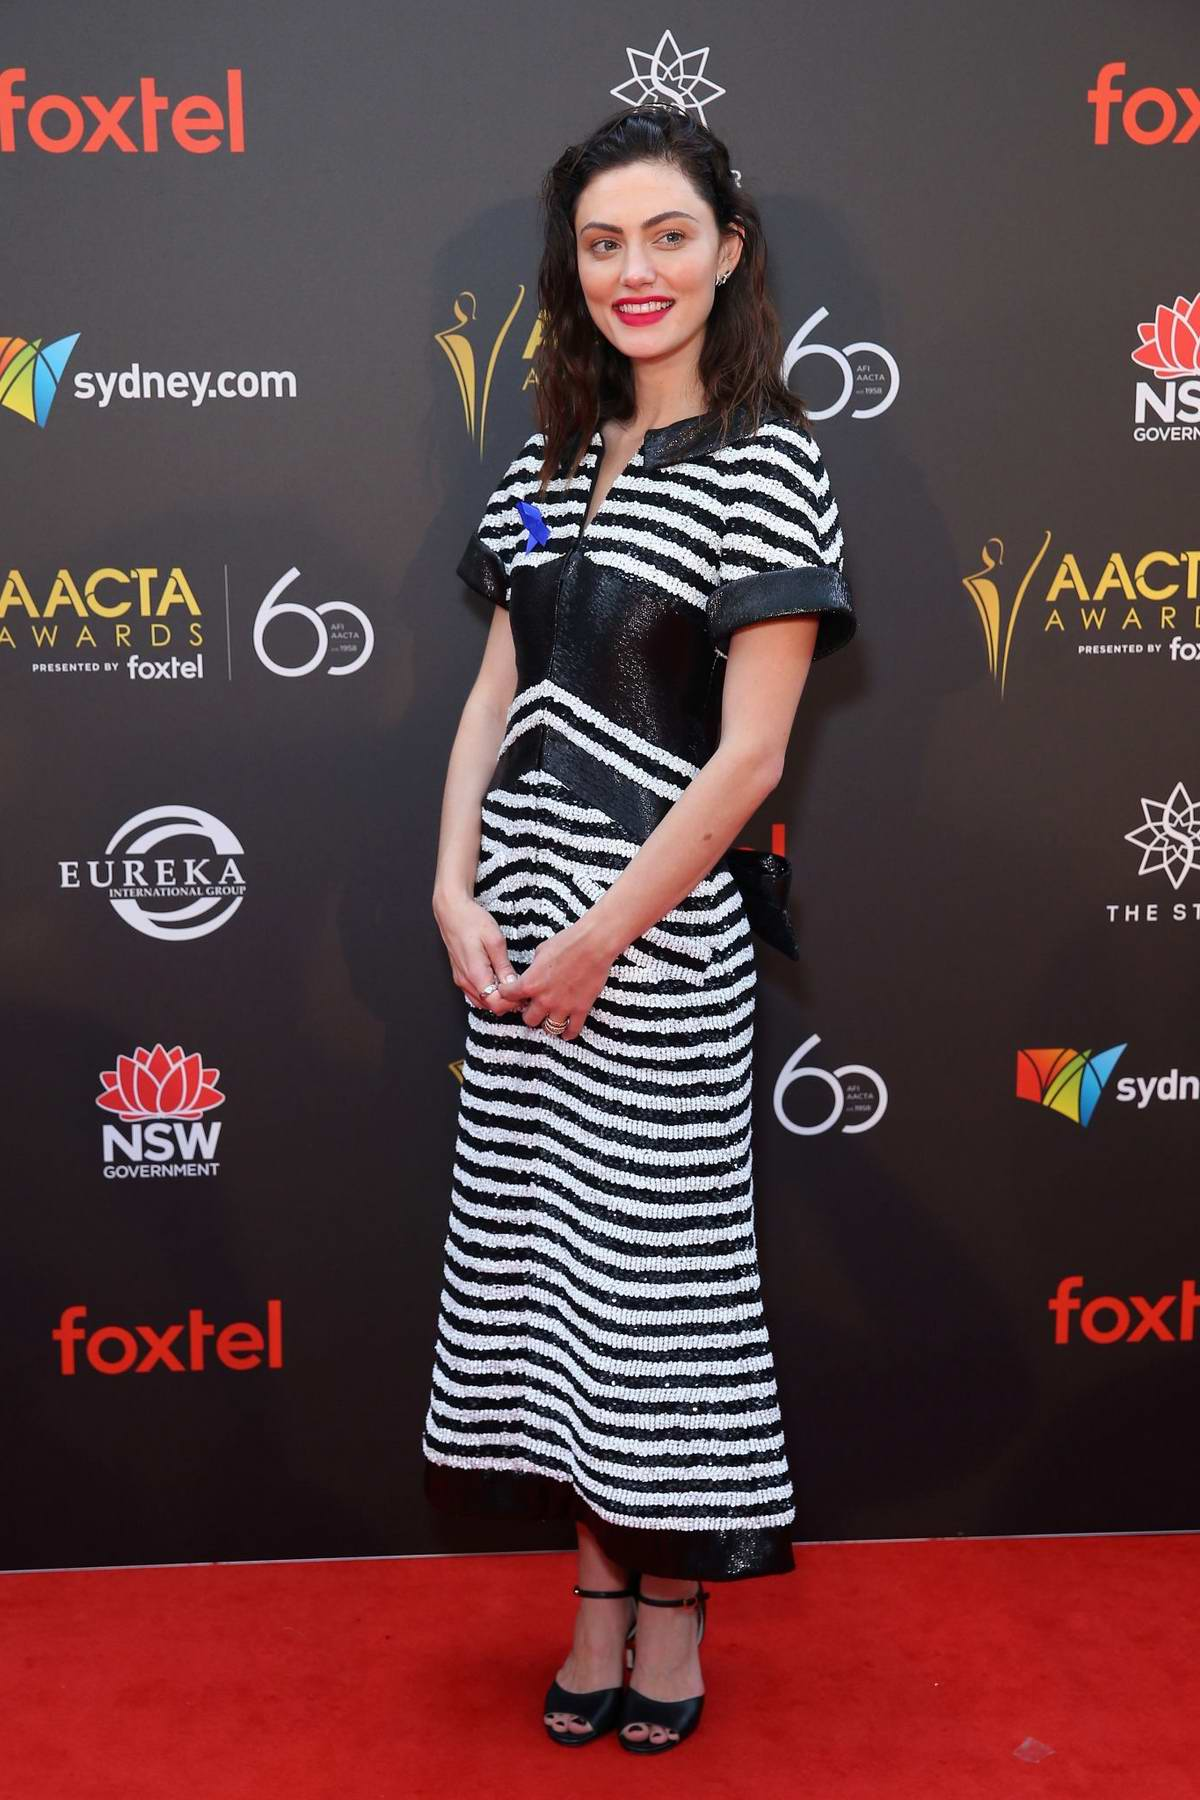 Phoebe Tonkin attends the 2018 AACTA Awards in Sydney, Australia